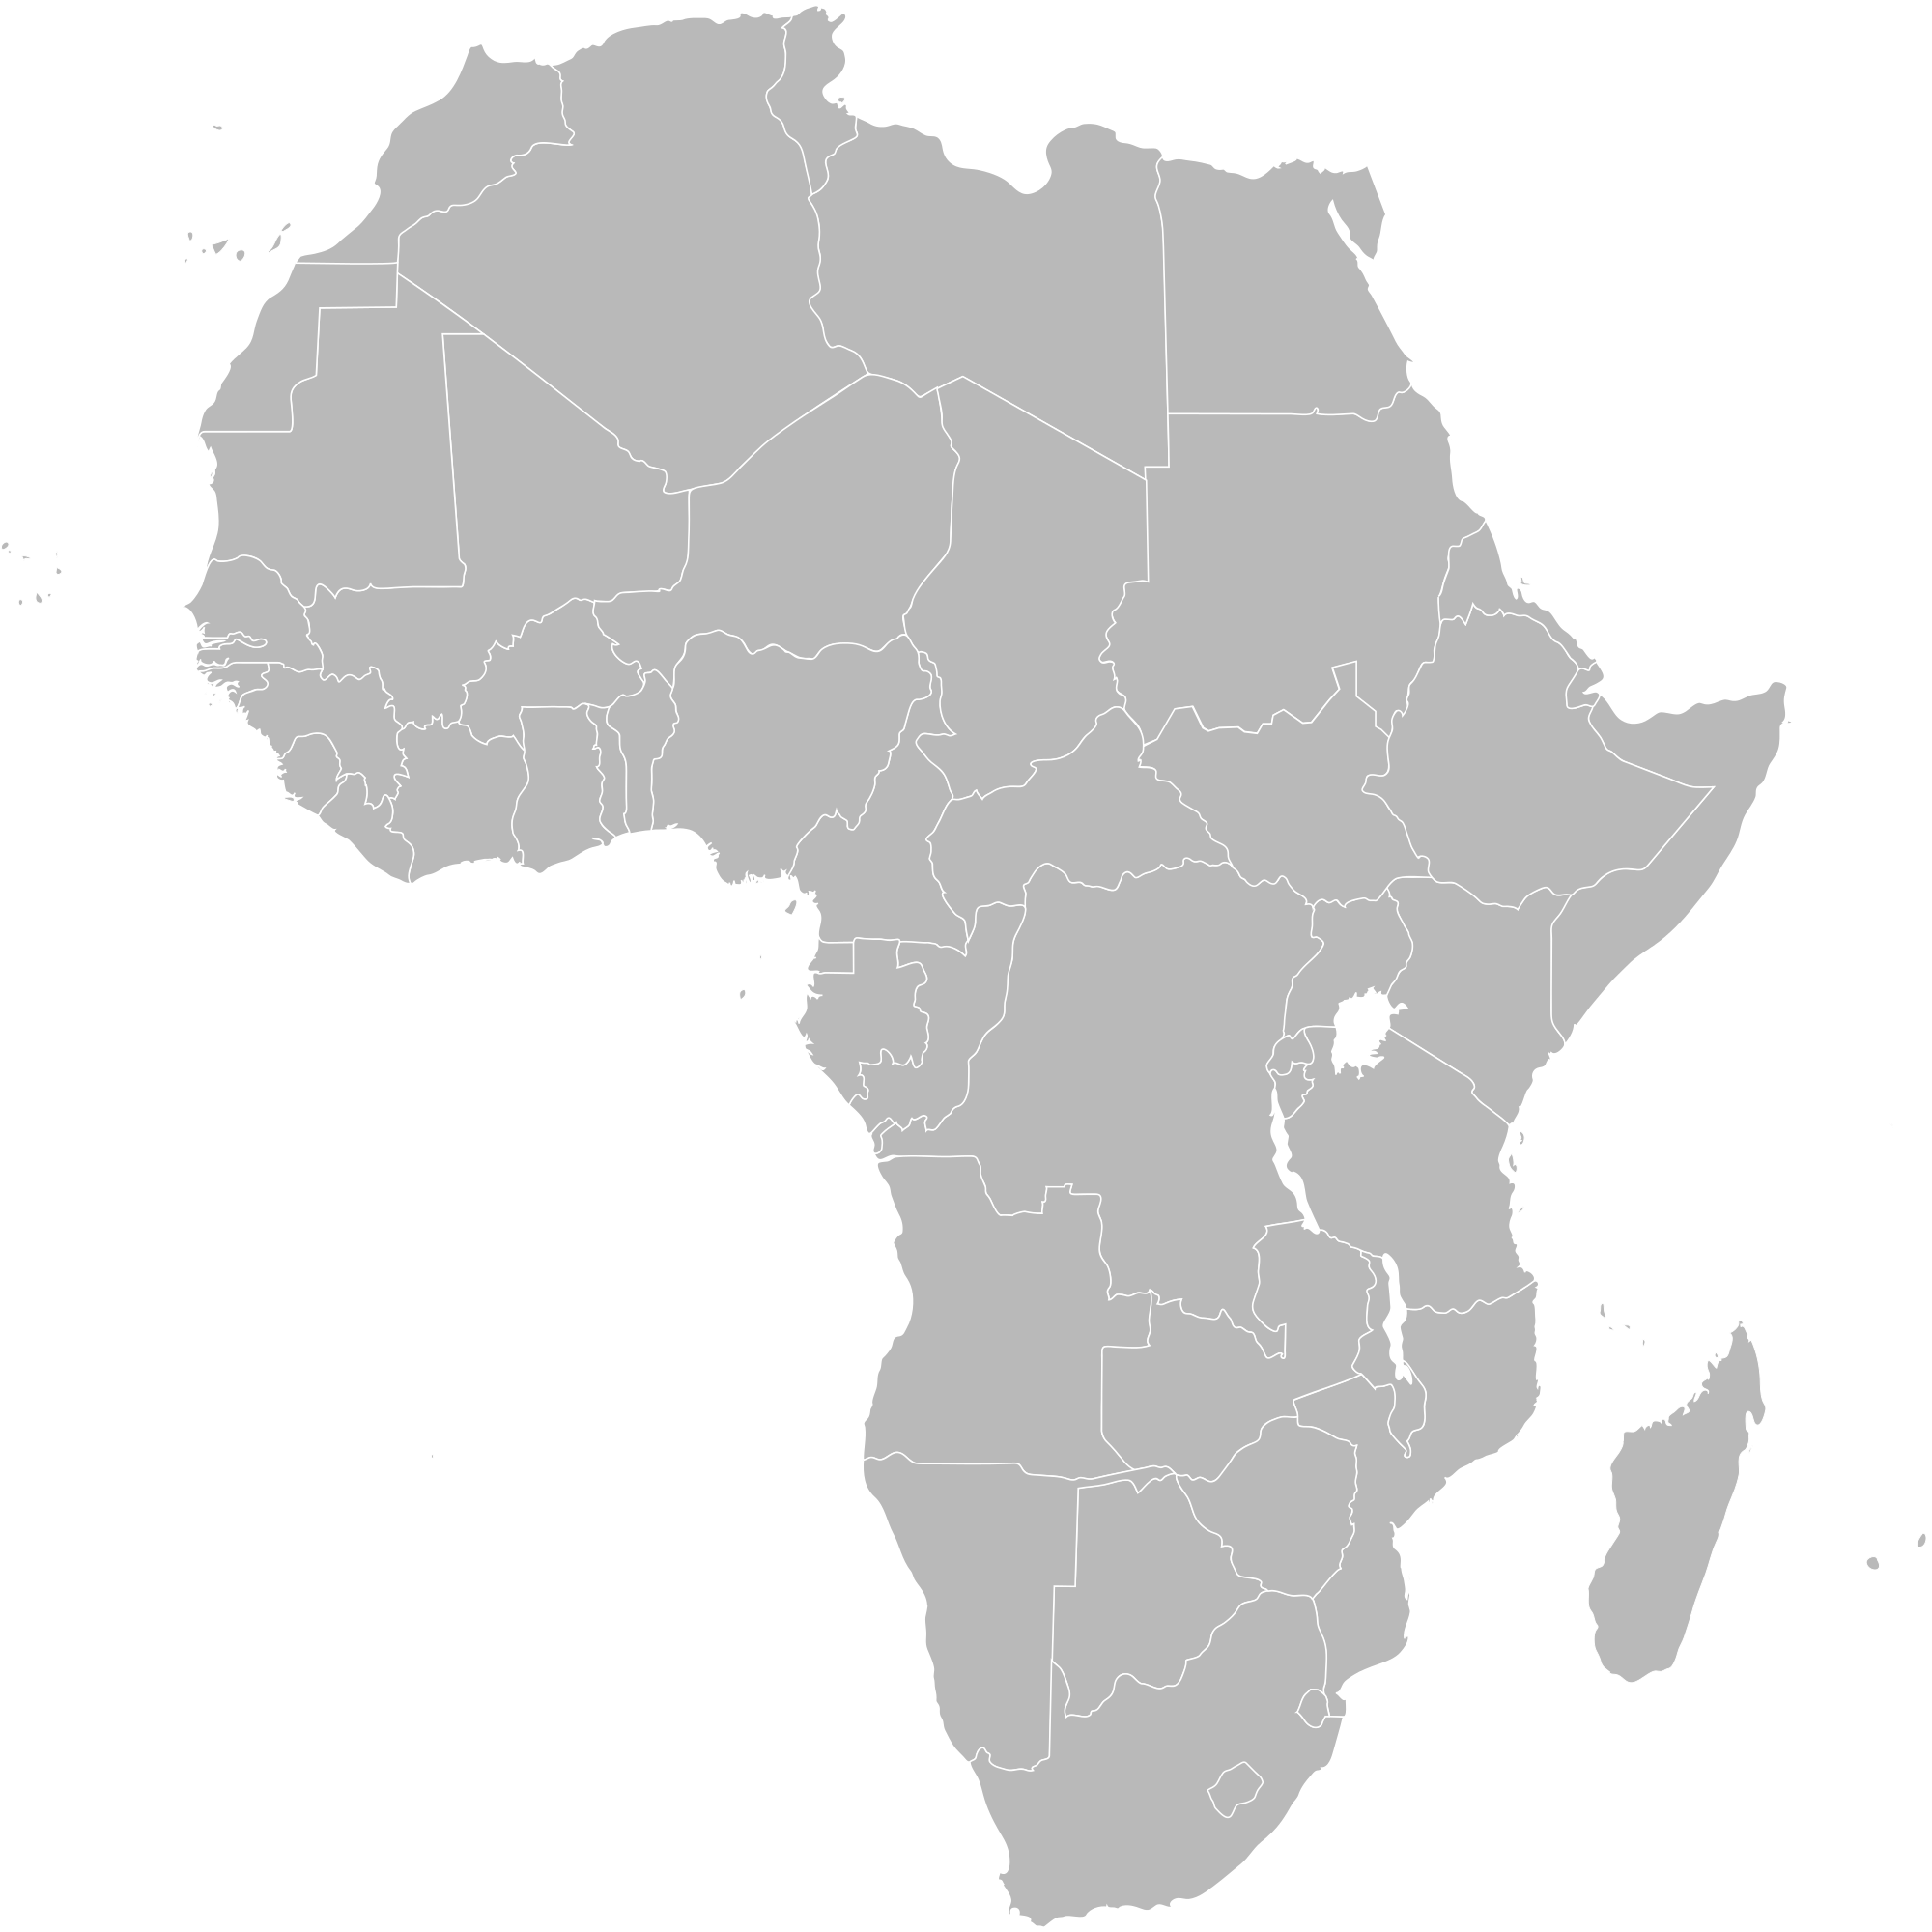 blank map of africa africa blank political map nexus5manual throughout blank africa map blank of